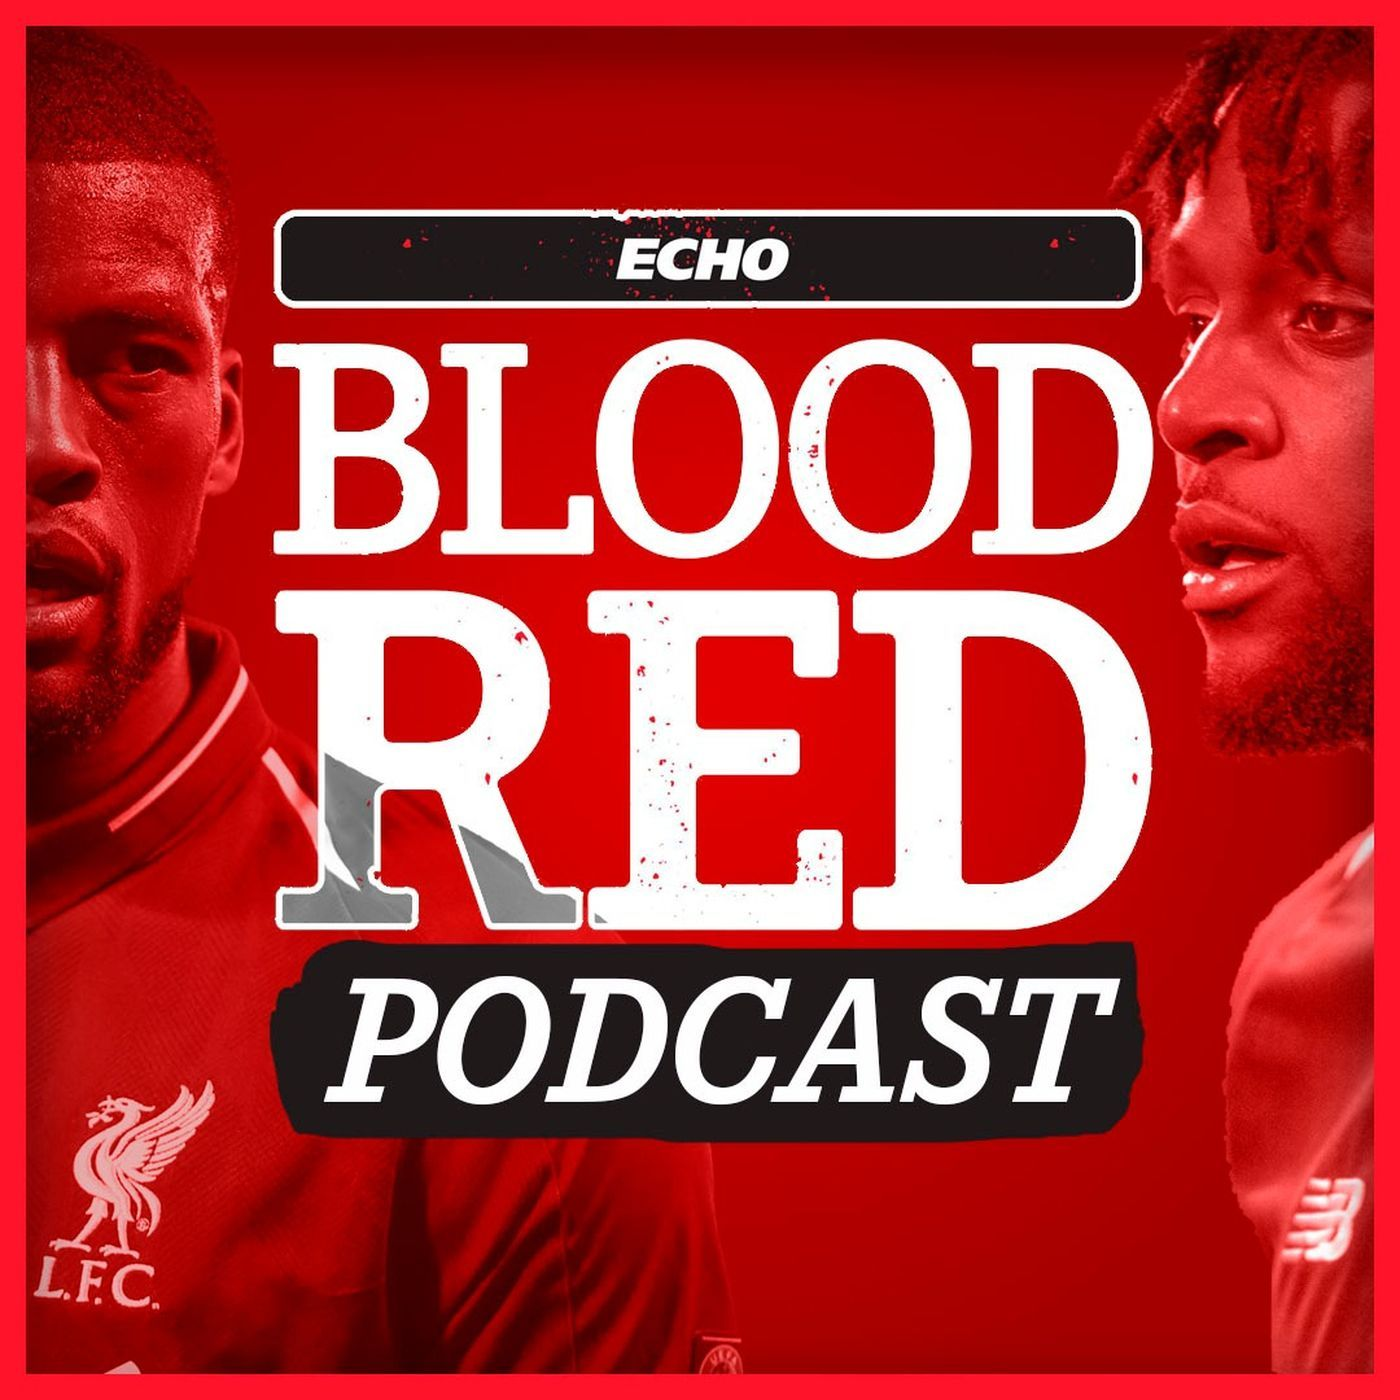 Blood Red: What next for Liverpool's Barcelona heroes? | Wijnaldum, Origi, Shaqiri